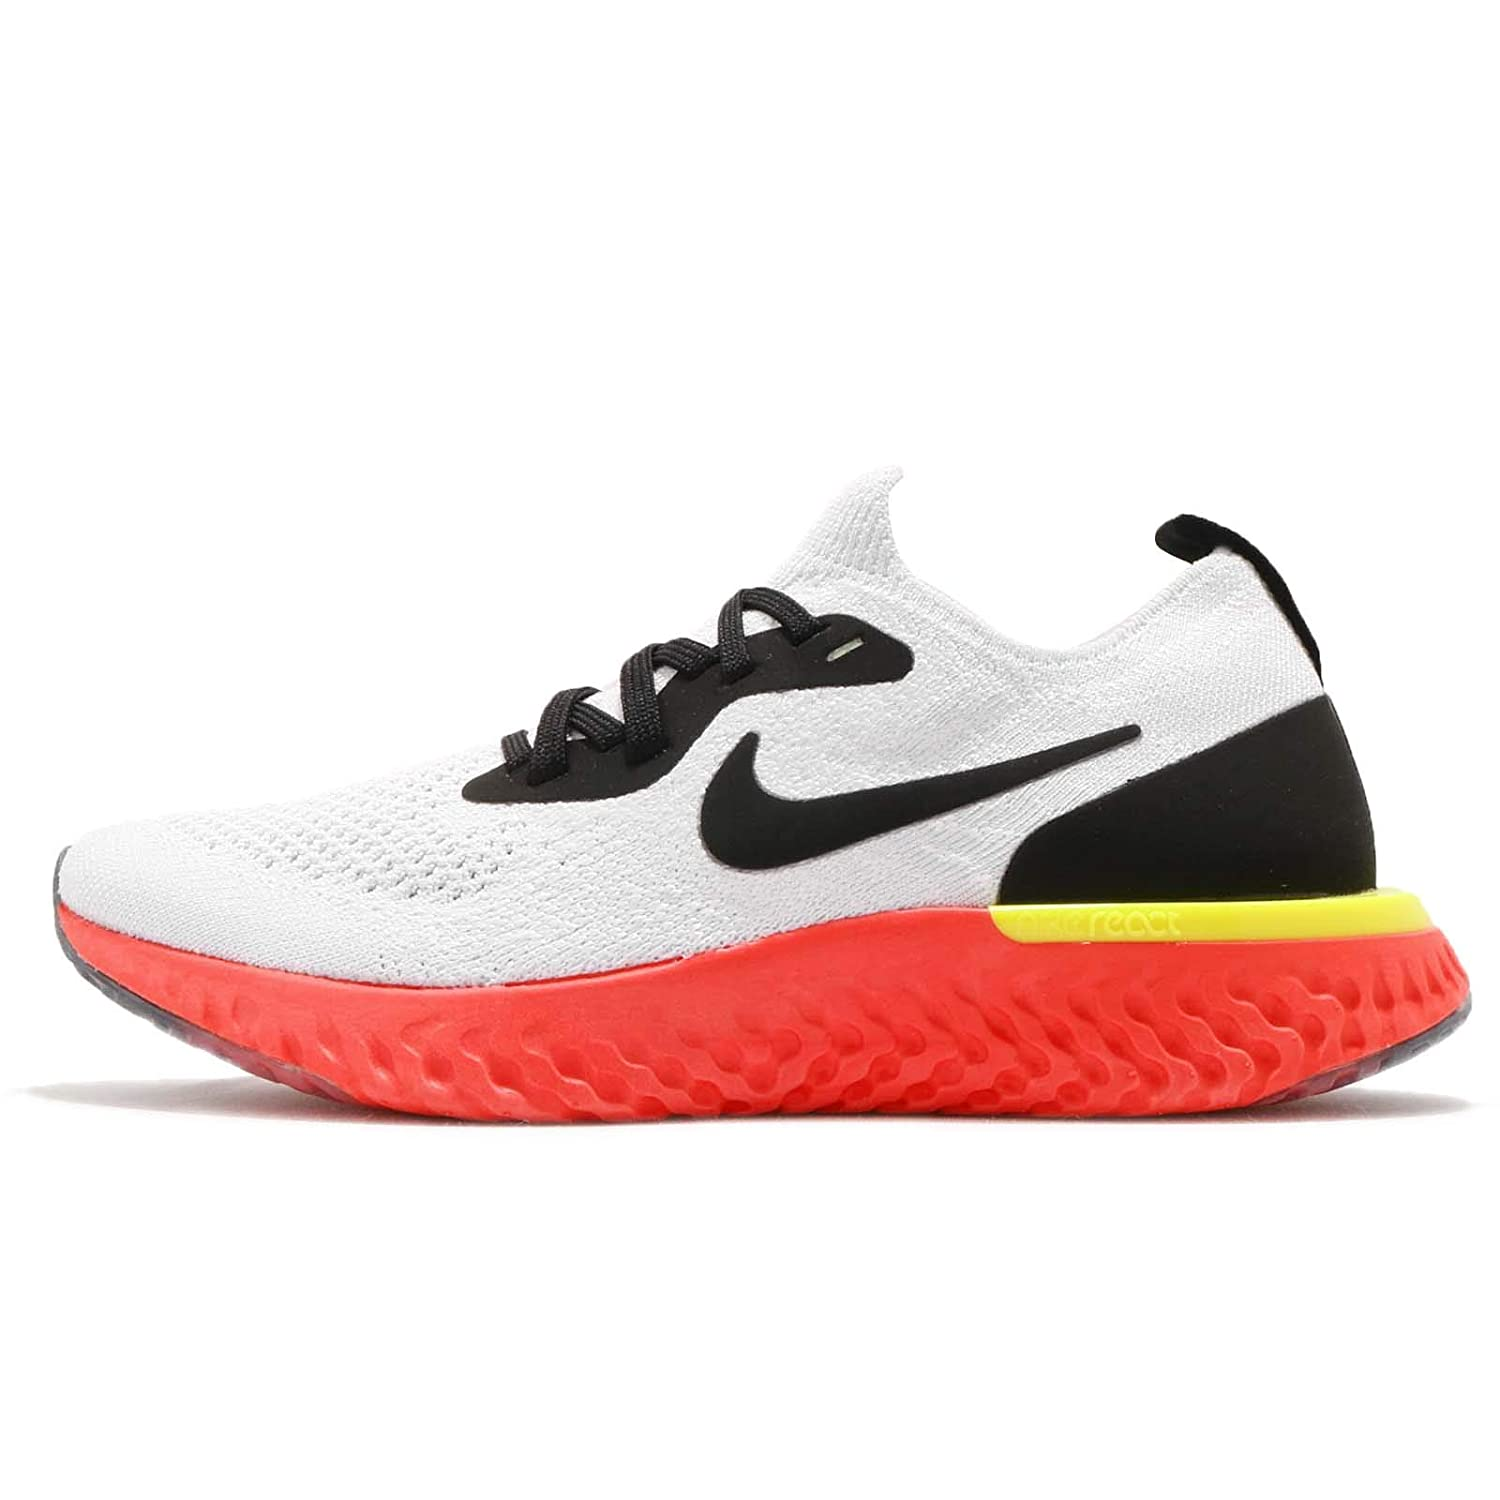 45579bb4c86f Nike Epic React Flyknit (gs) Big Kids 943311-103